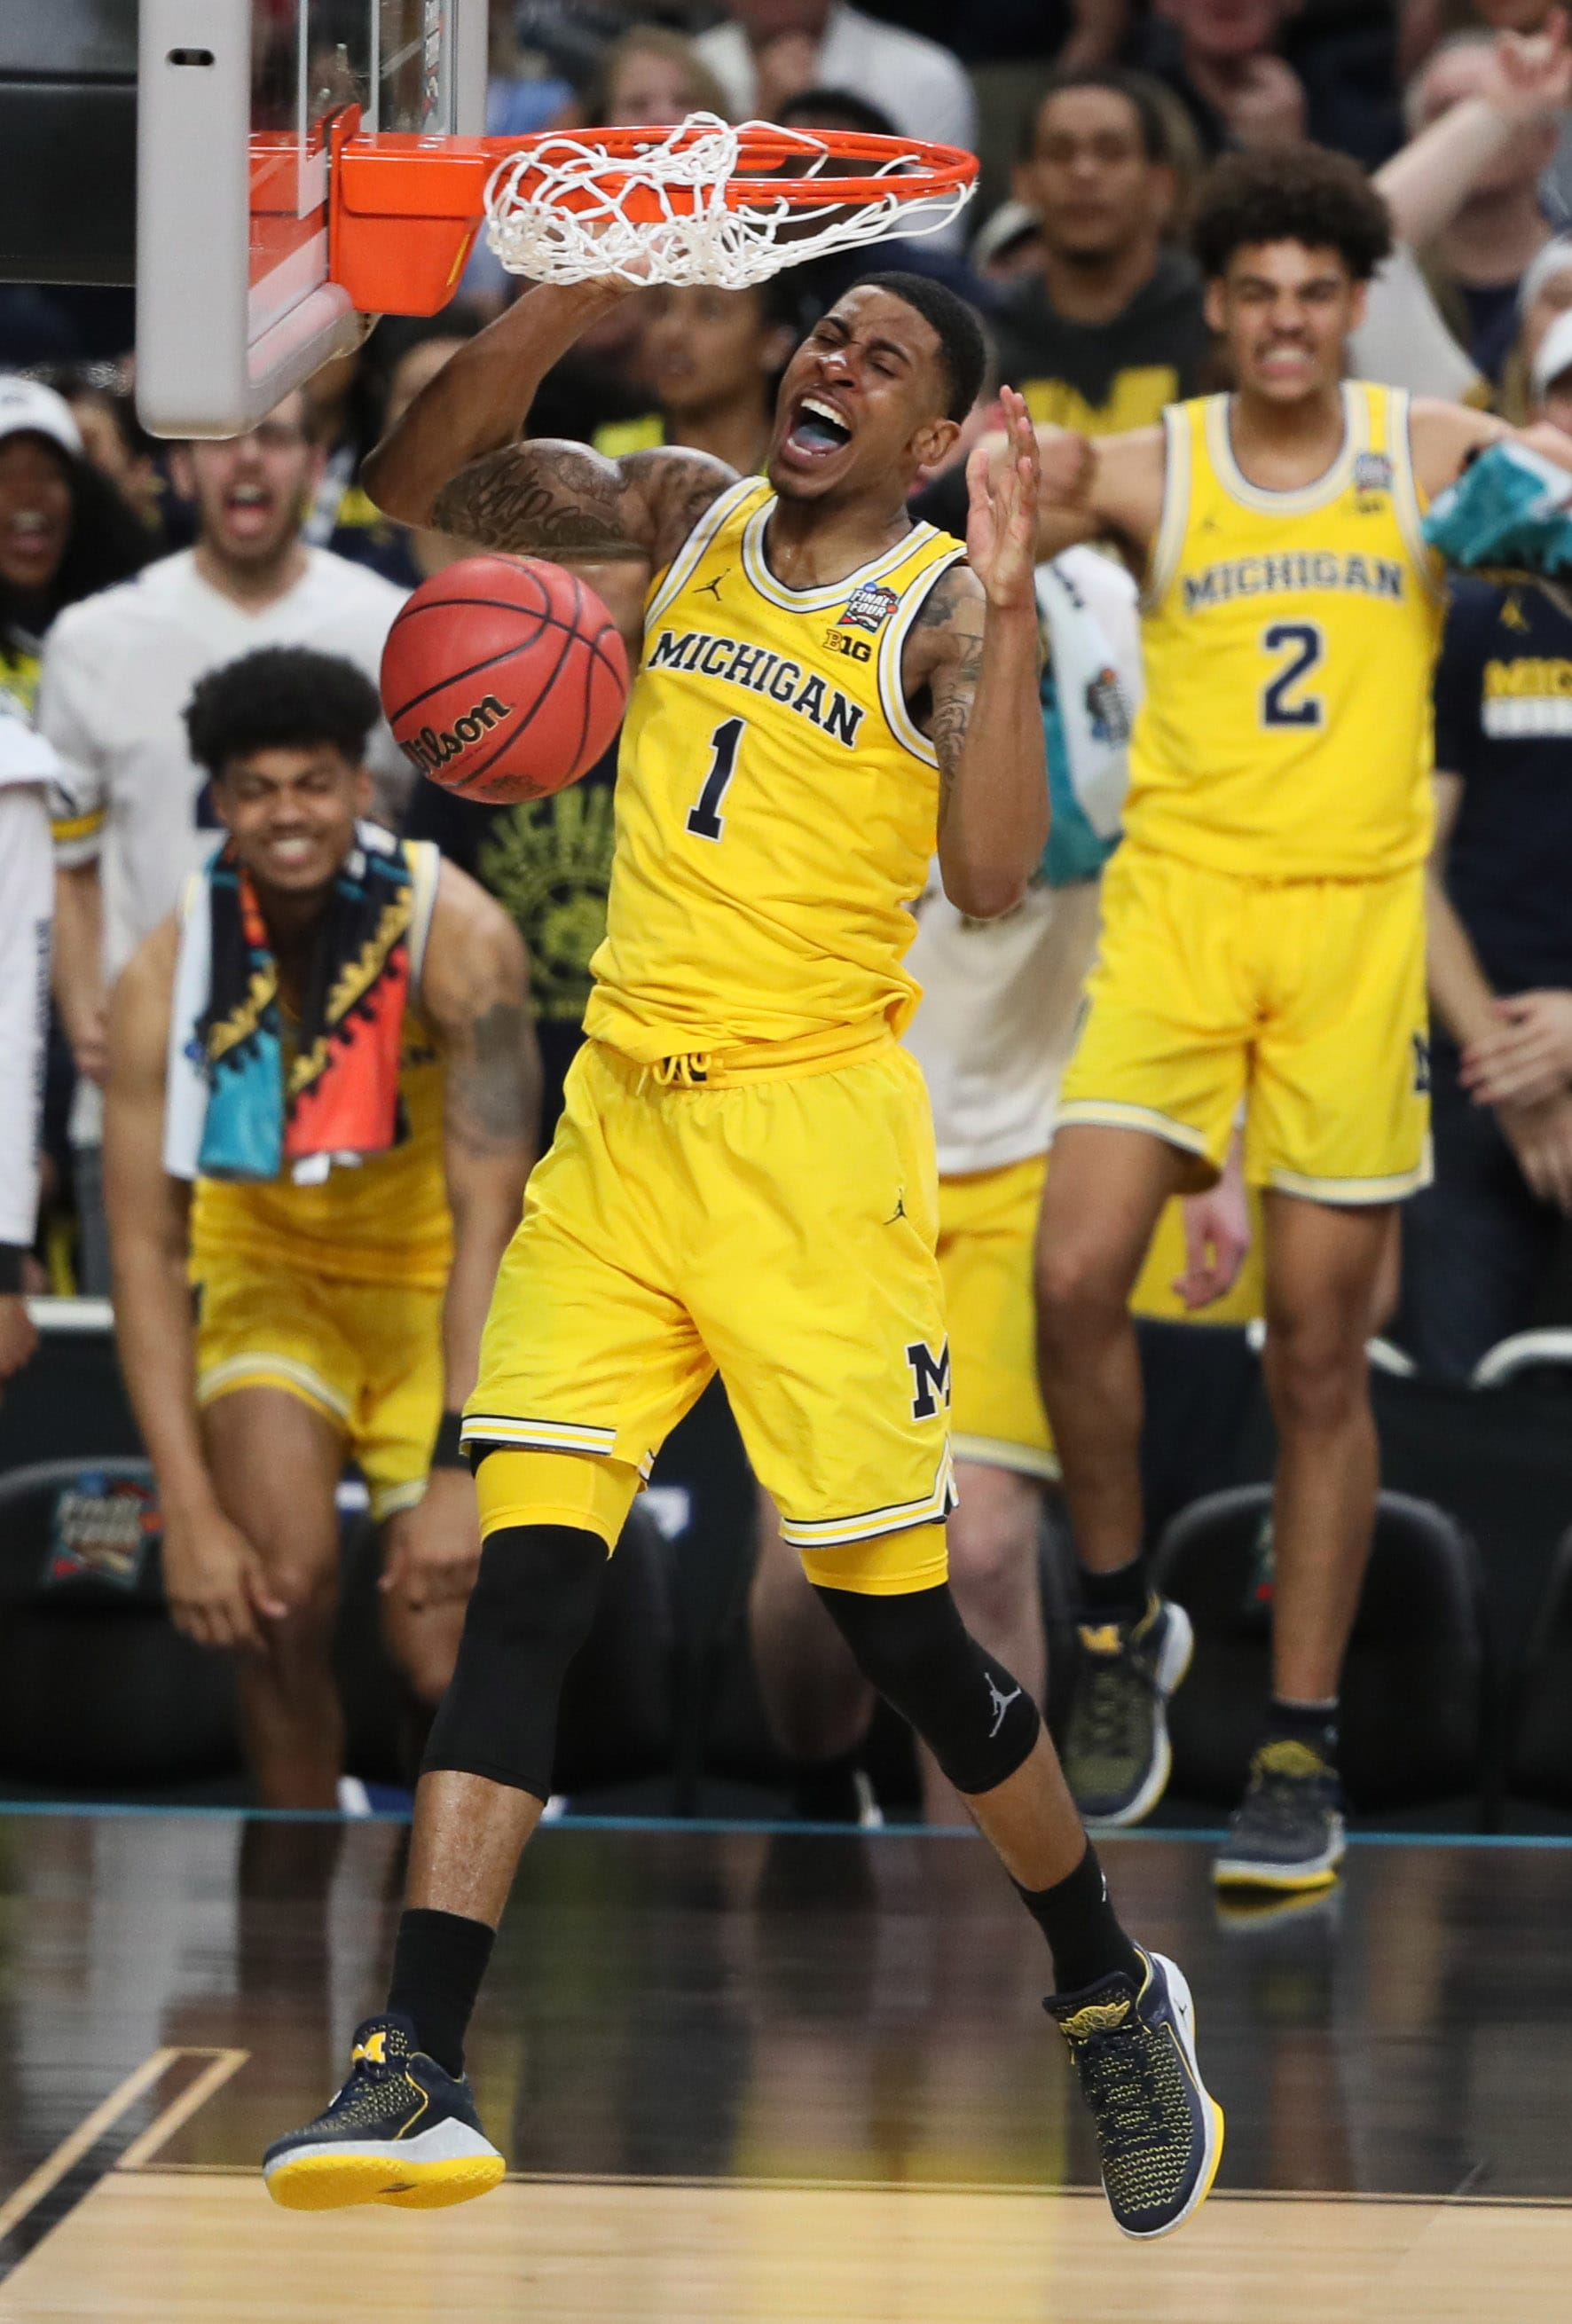 11 Things To Watch For In Mondays Villanova Vs Michigan National Championship Game